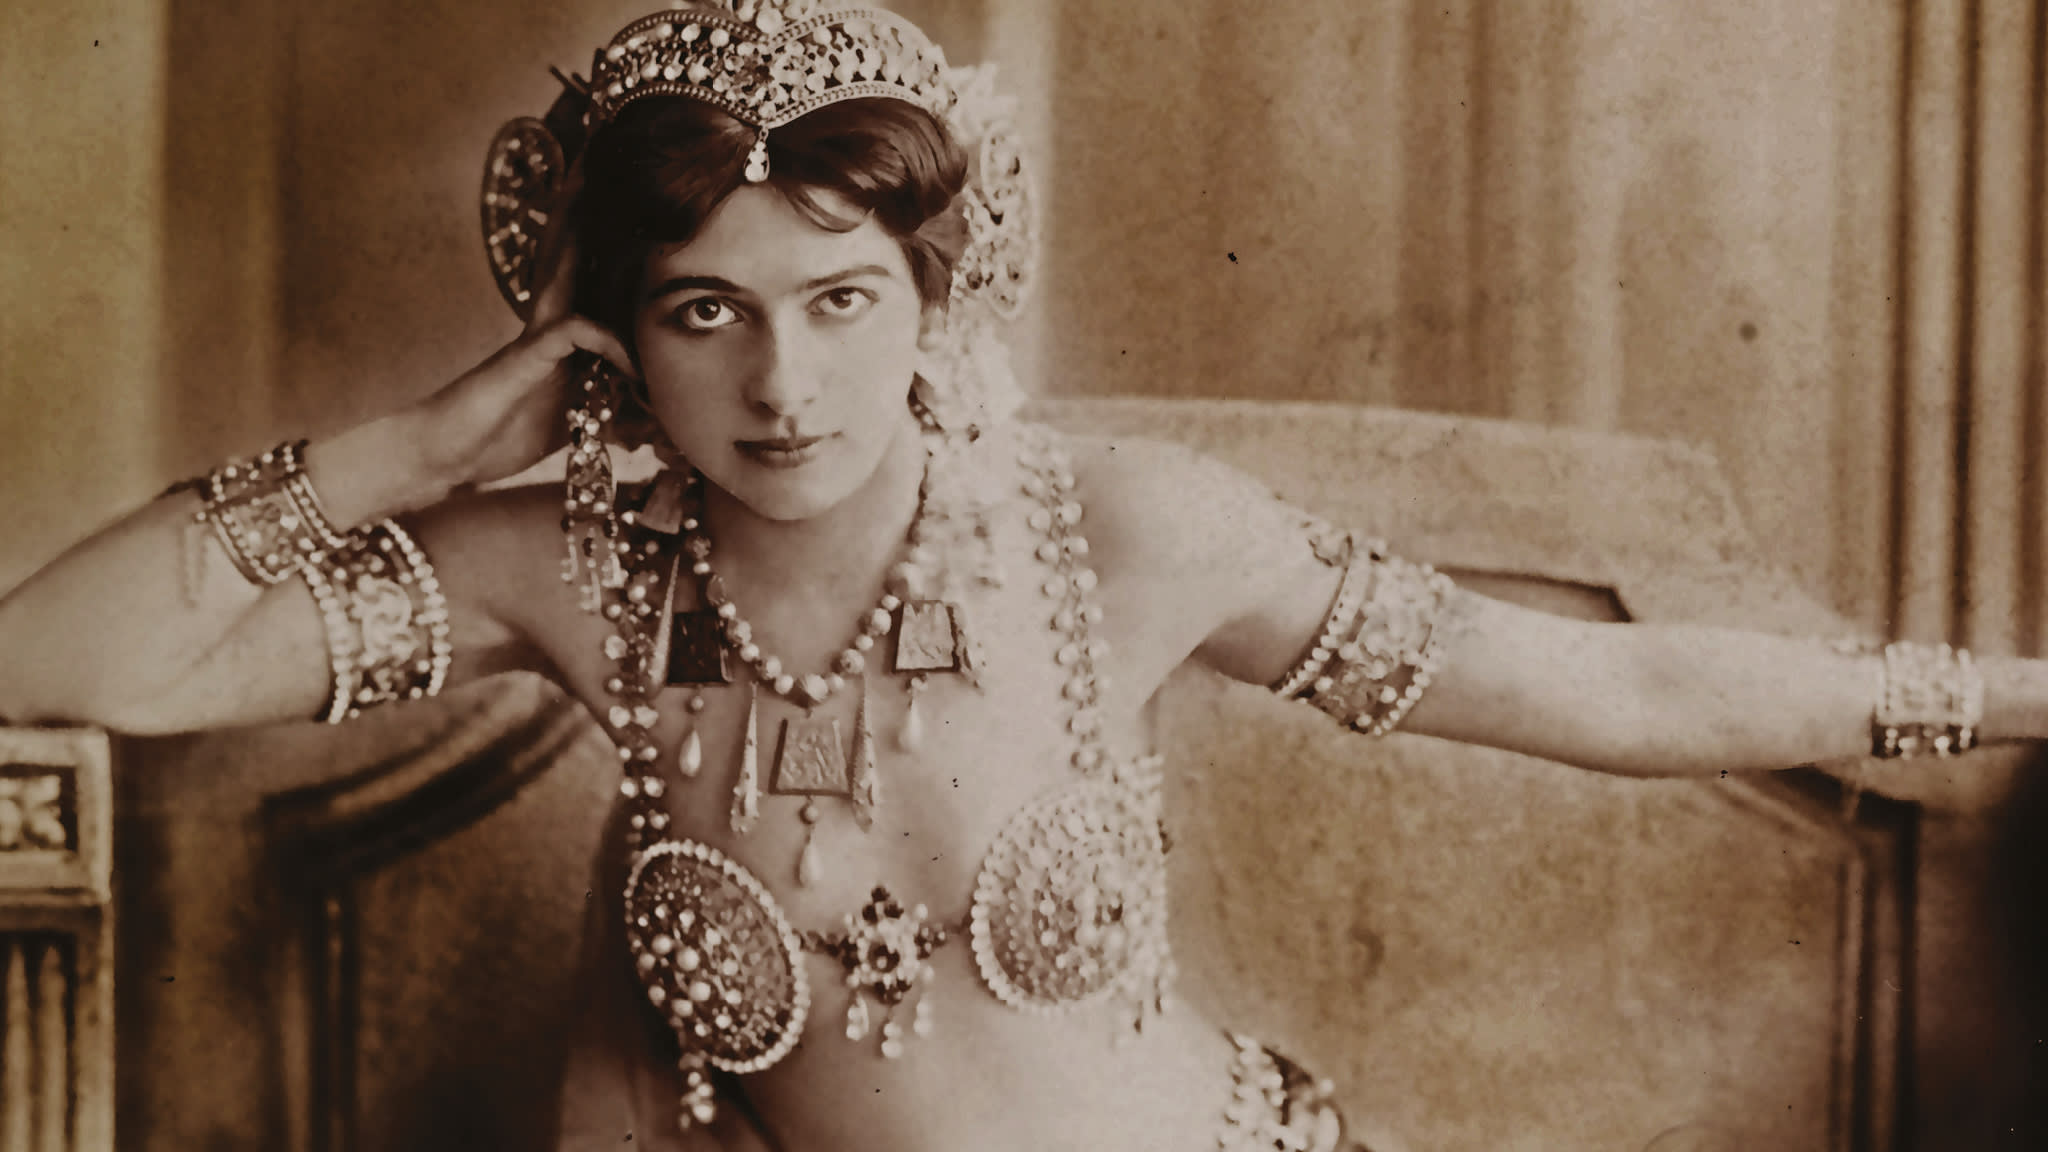 mata hari: femme fatale, spy or victim of a moralistic time?